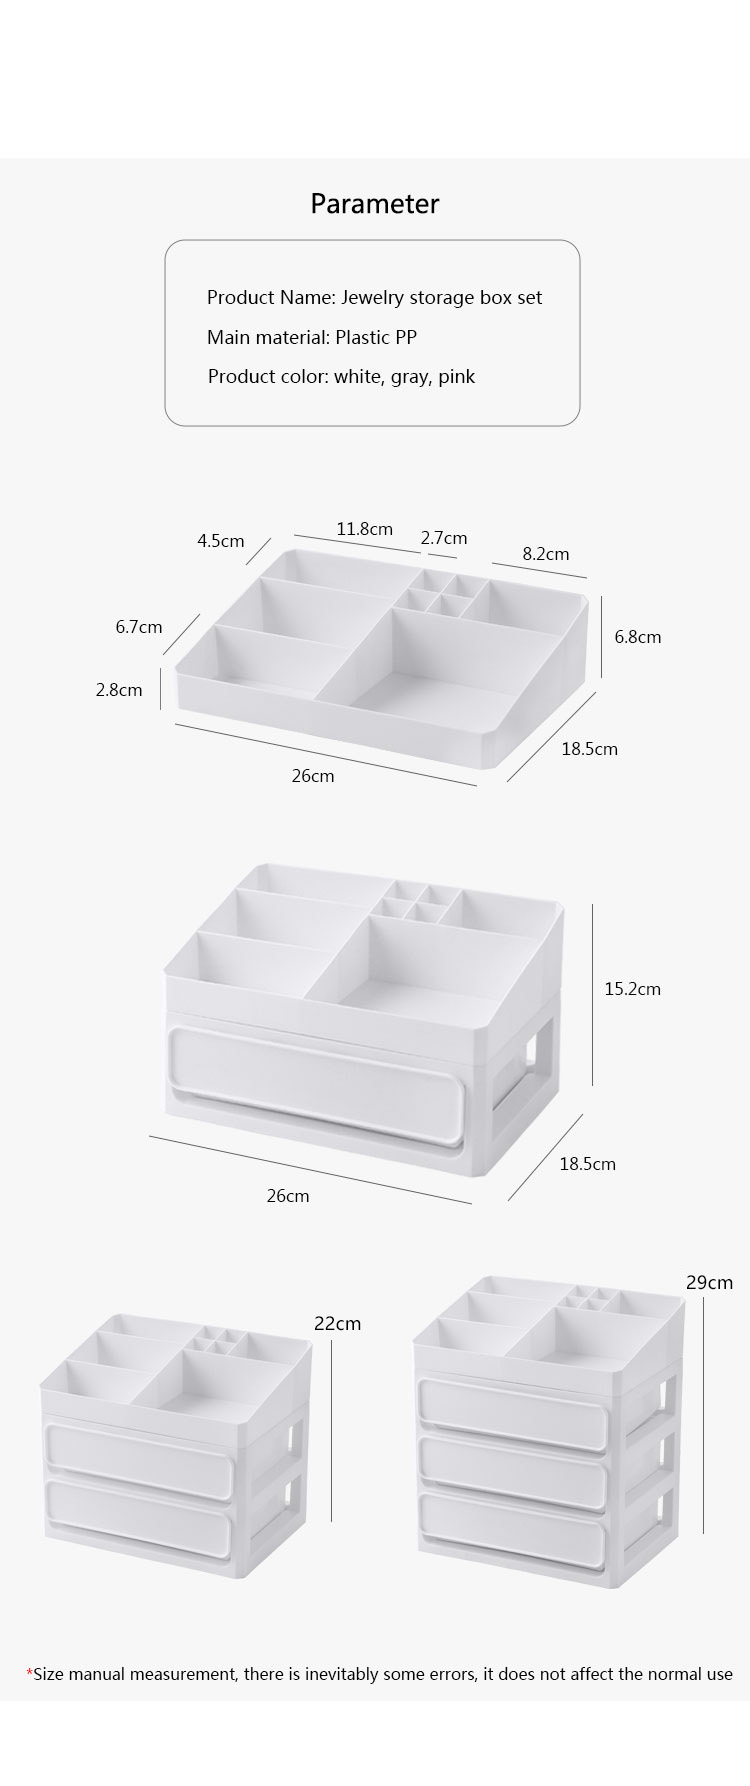 HTB1 i0HaizxK1RjSspjq6AS.pXaO - Plastic Makeup Drawers Storage Box Jewelry Container Make up Organizer